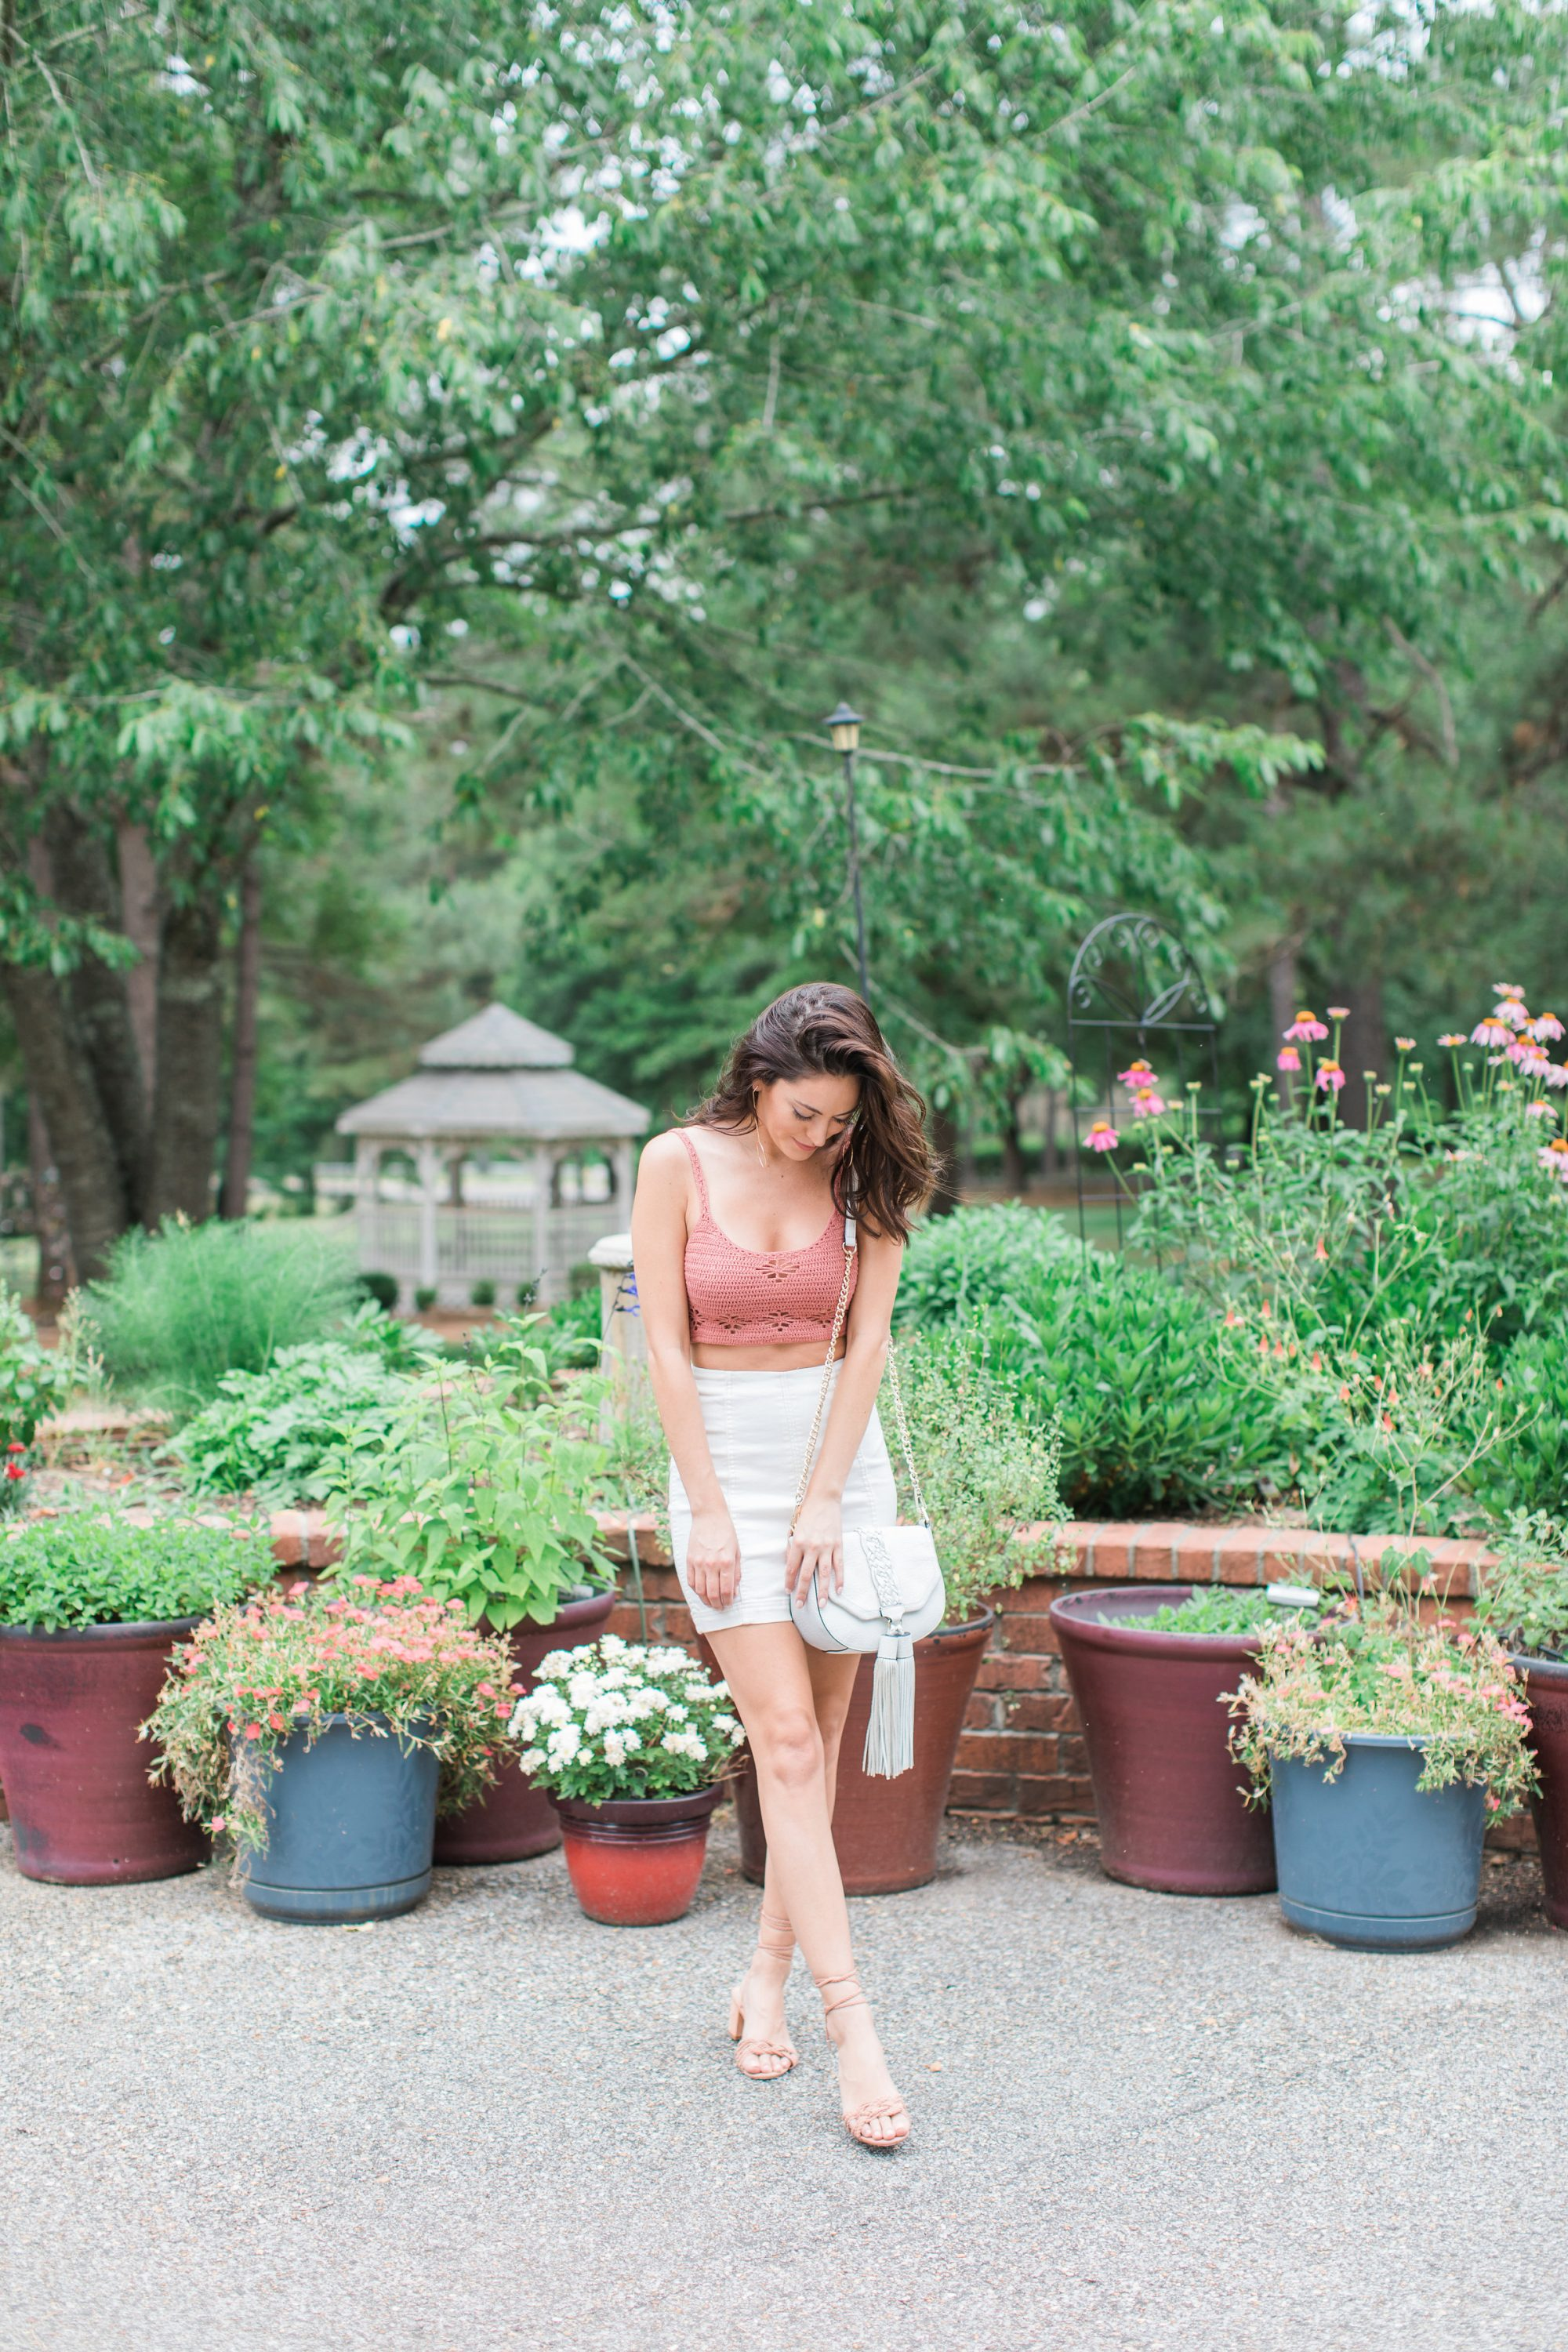 free people Berkinette Crochet Cami, free people Modern Femme Mini Skirt, Schutz Marlie toasted, spring outfit ideas, how to wear a crop top, summer outfits, how to wear tie up sandals, SUGARFIX by BaubleBar Drop Earrings with Hoops